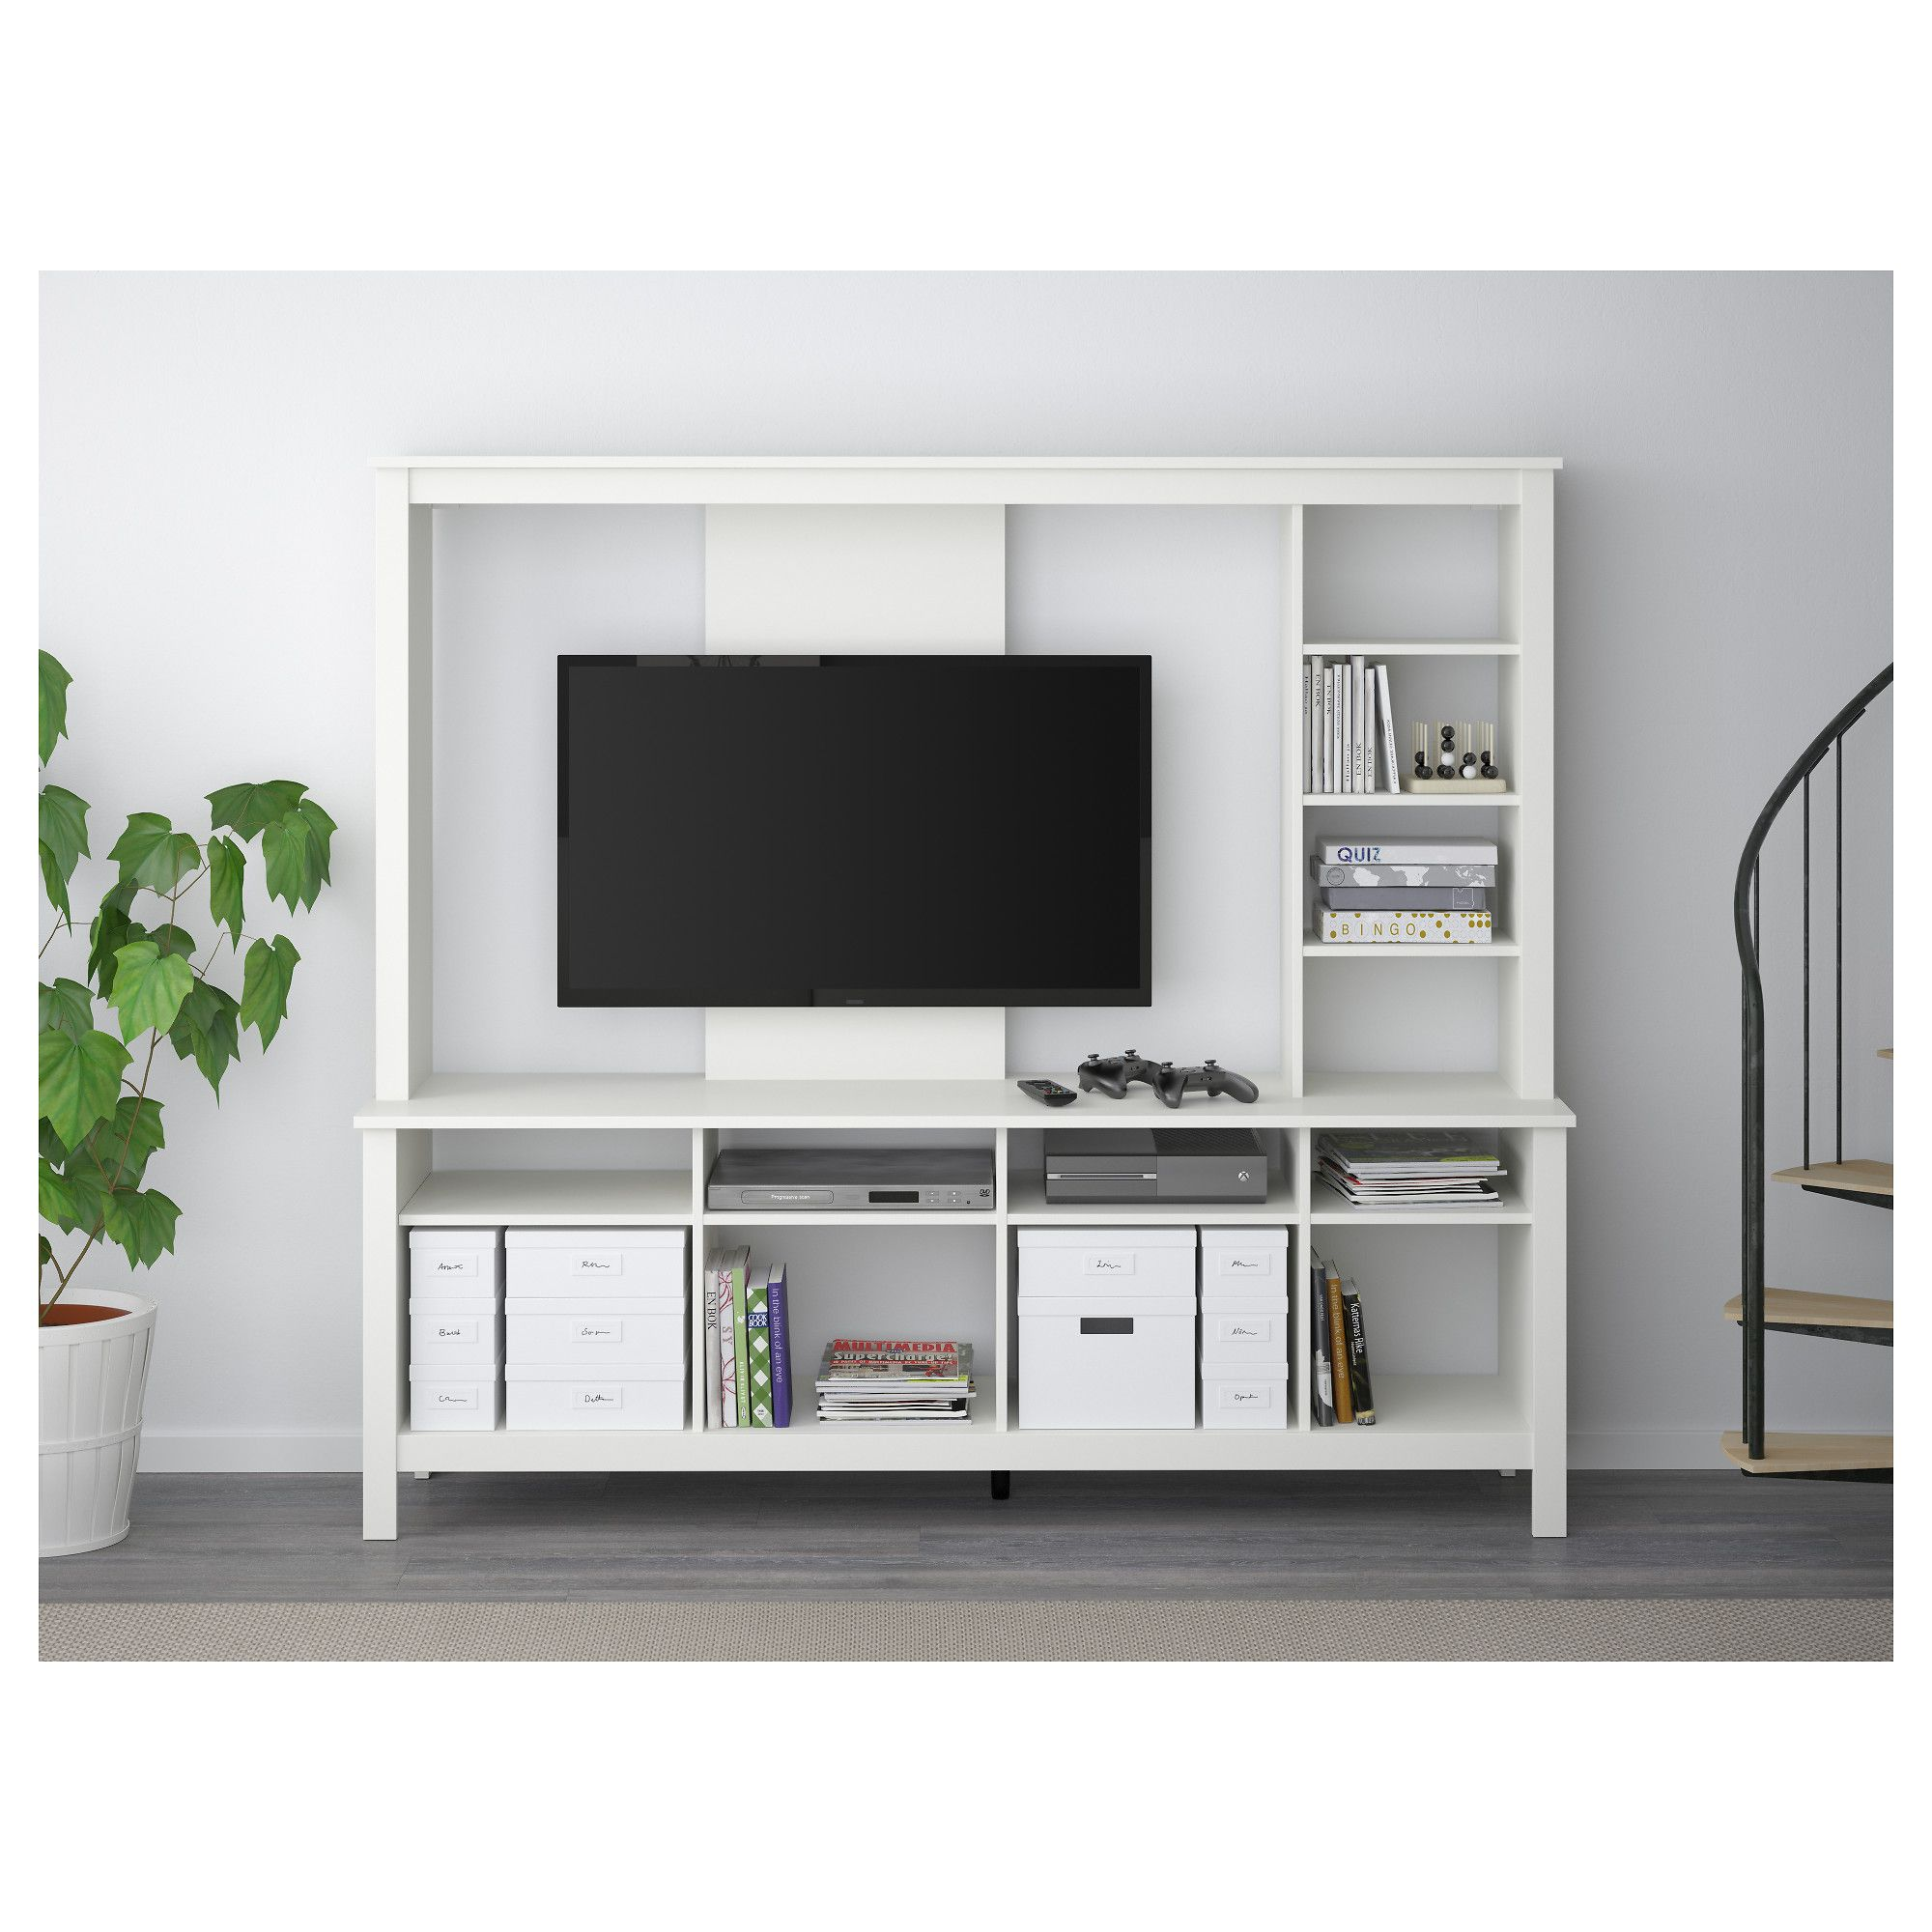 Furniture And Home Furnishings Decor Tv Storage Unit